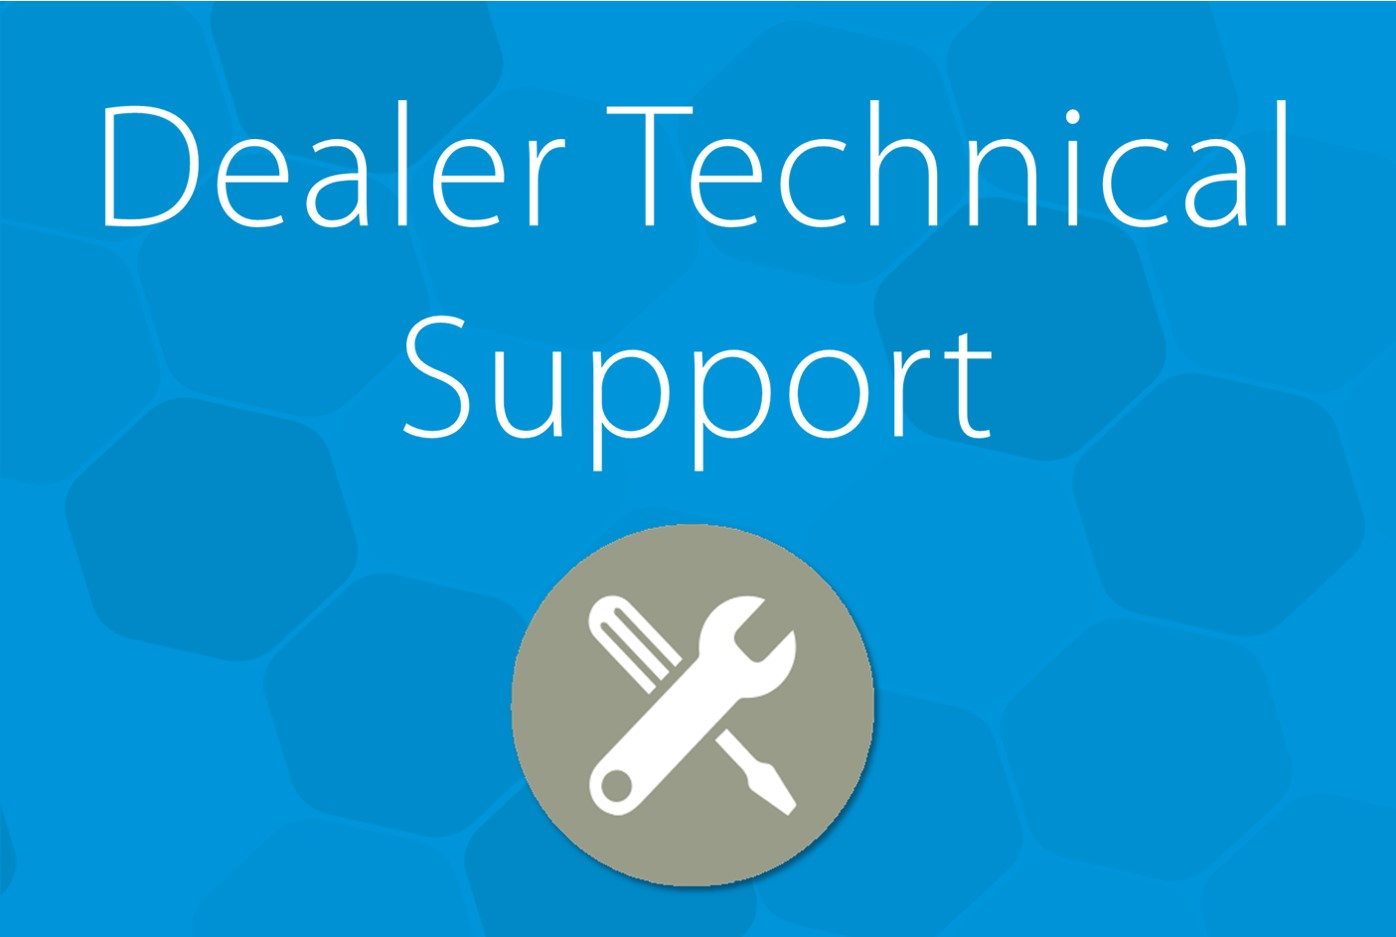 Clare's Dealer Technical Support